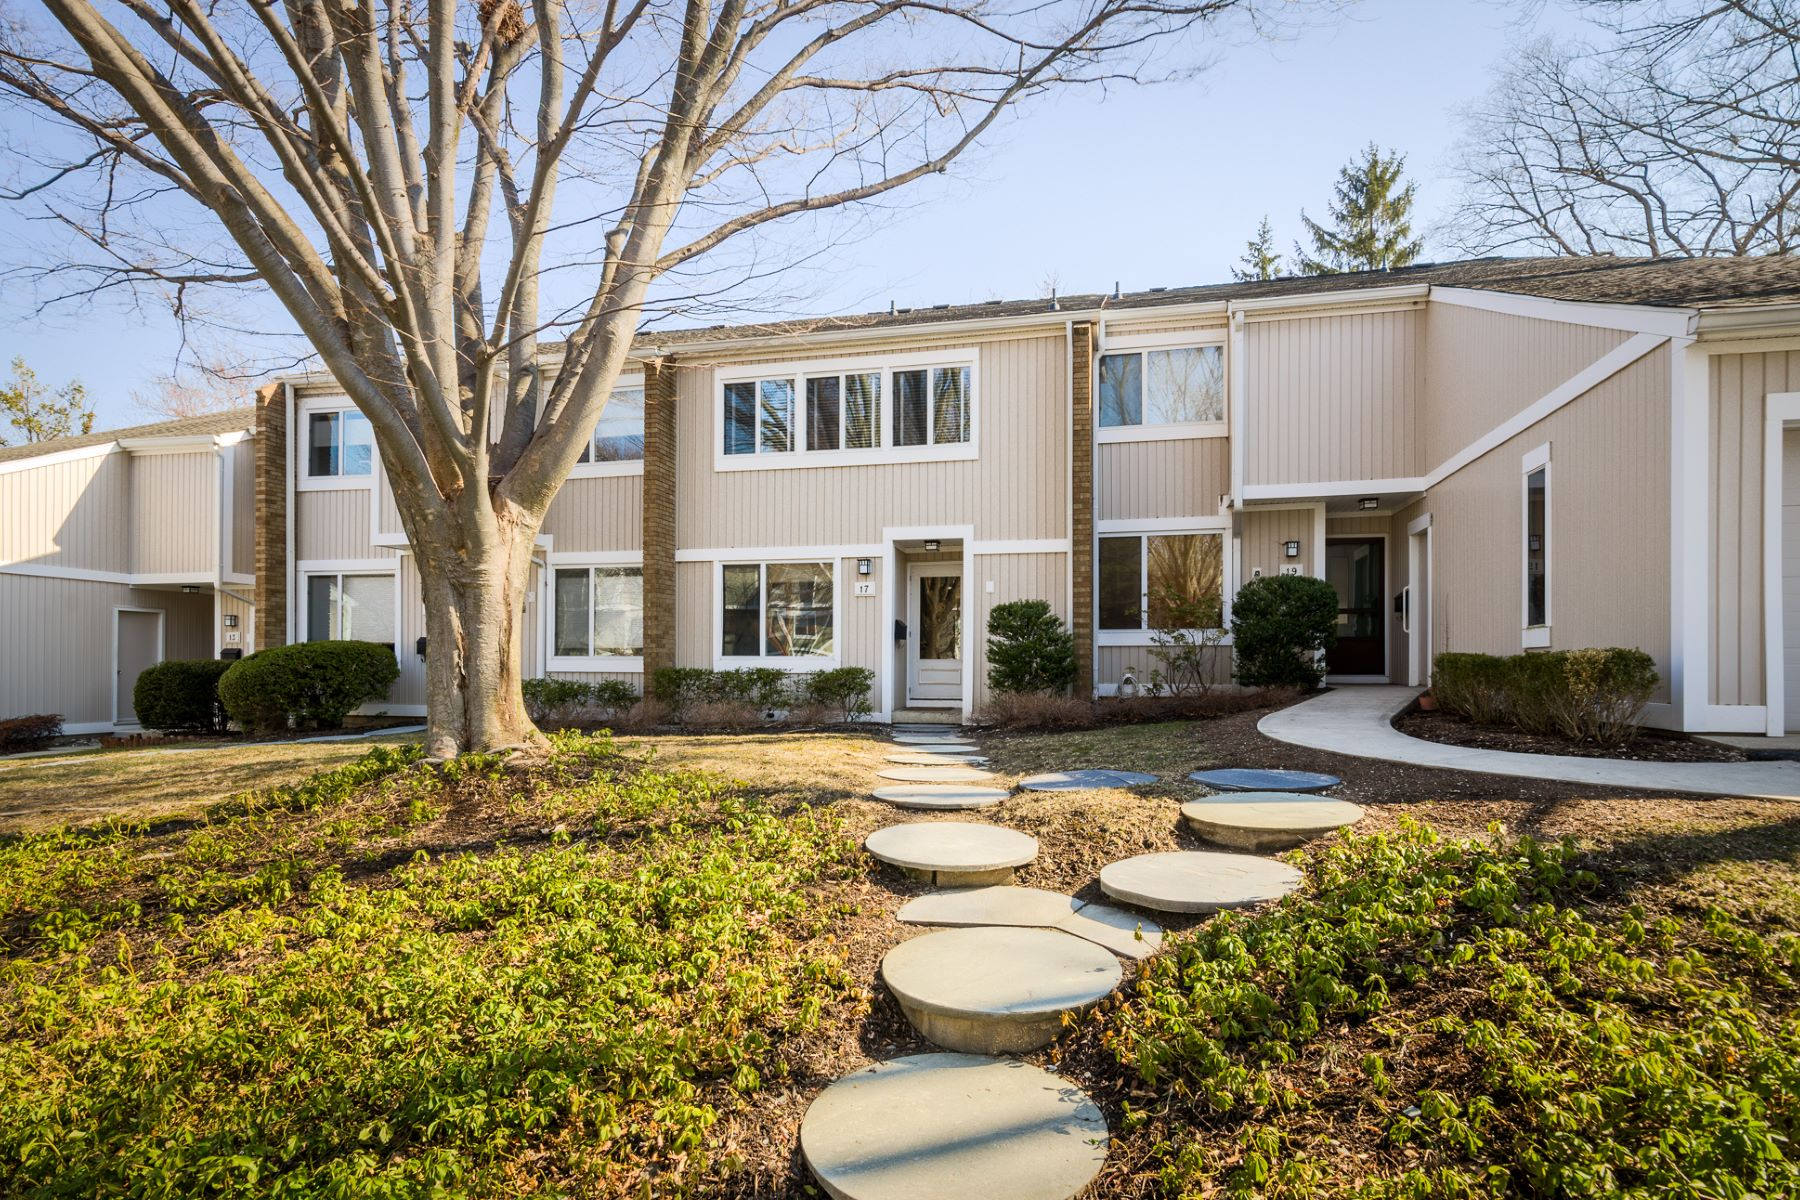 townhouses for Rent at Stunning 2 Bedroom Queenston Commons for Rent! 17 Gordon Way, Princeton, New Jersey 08540 United States